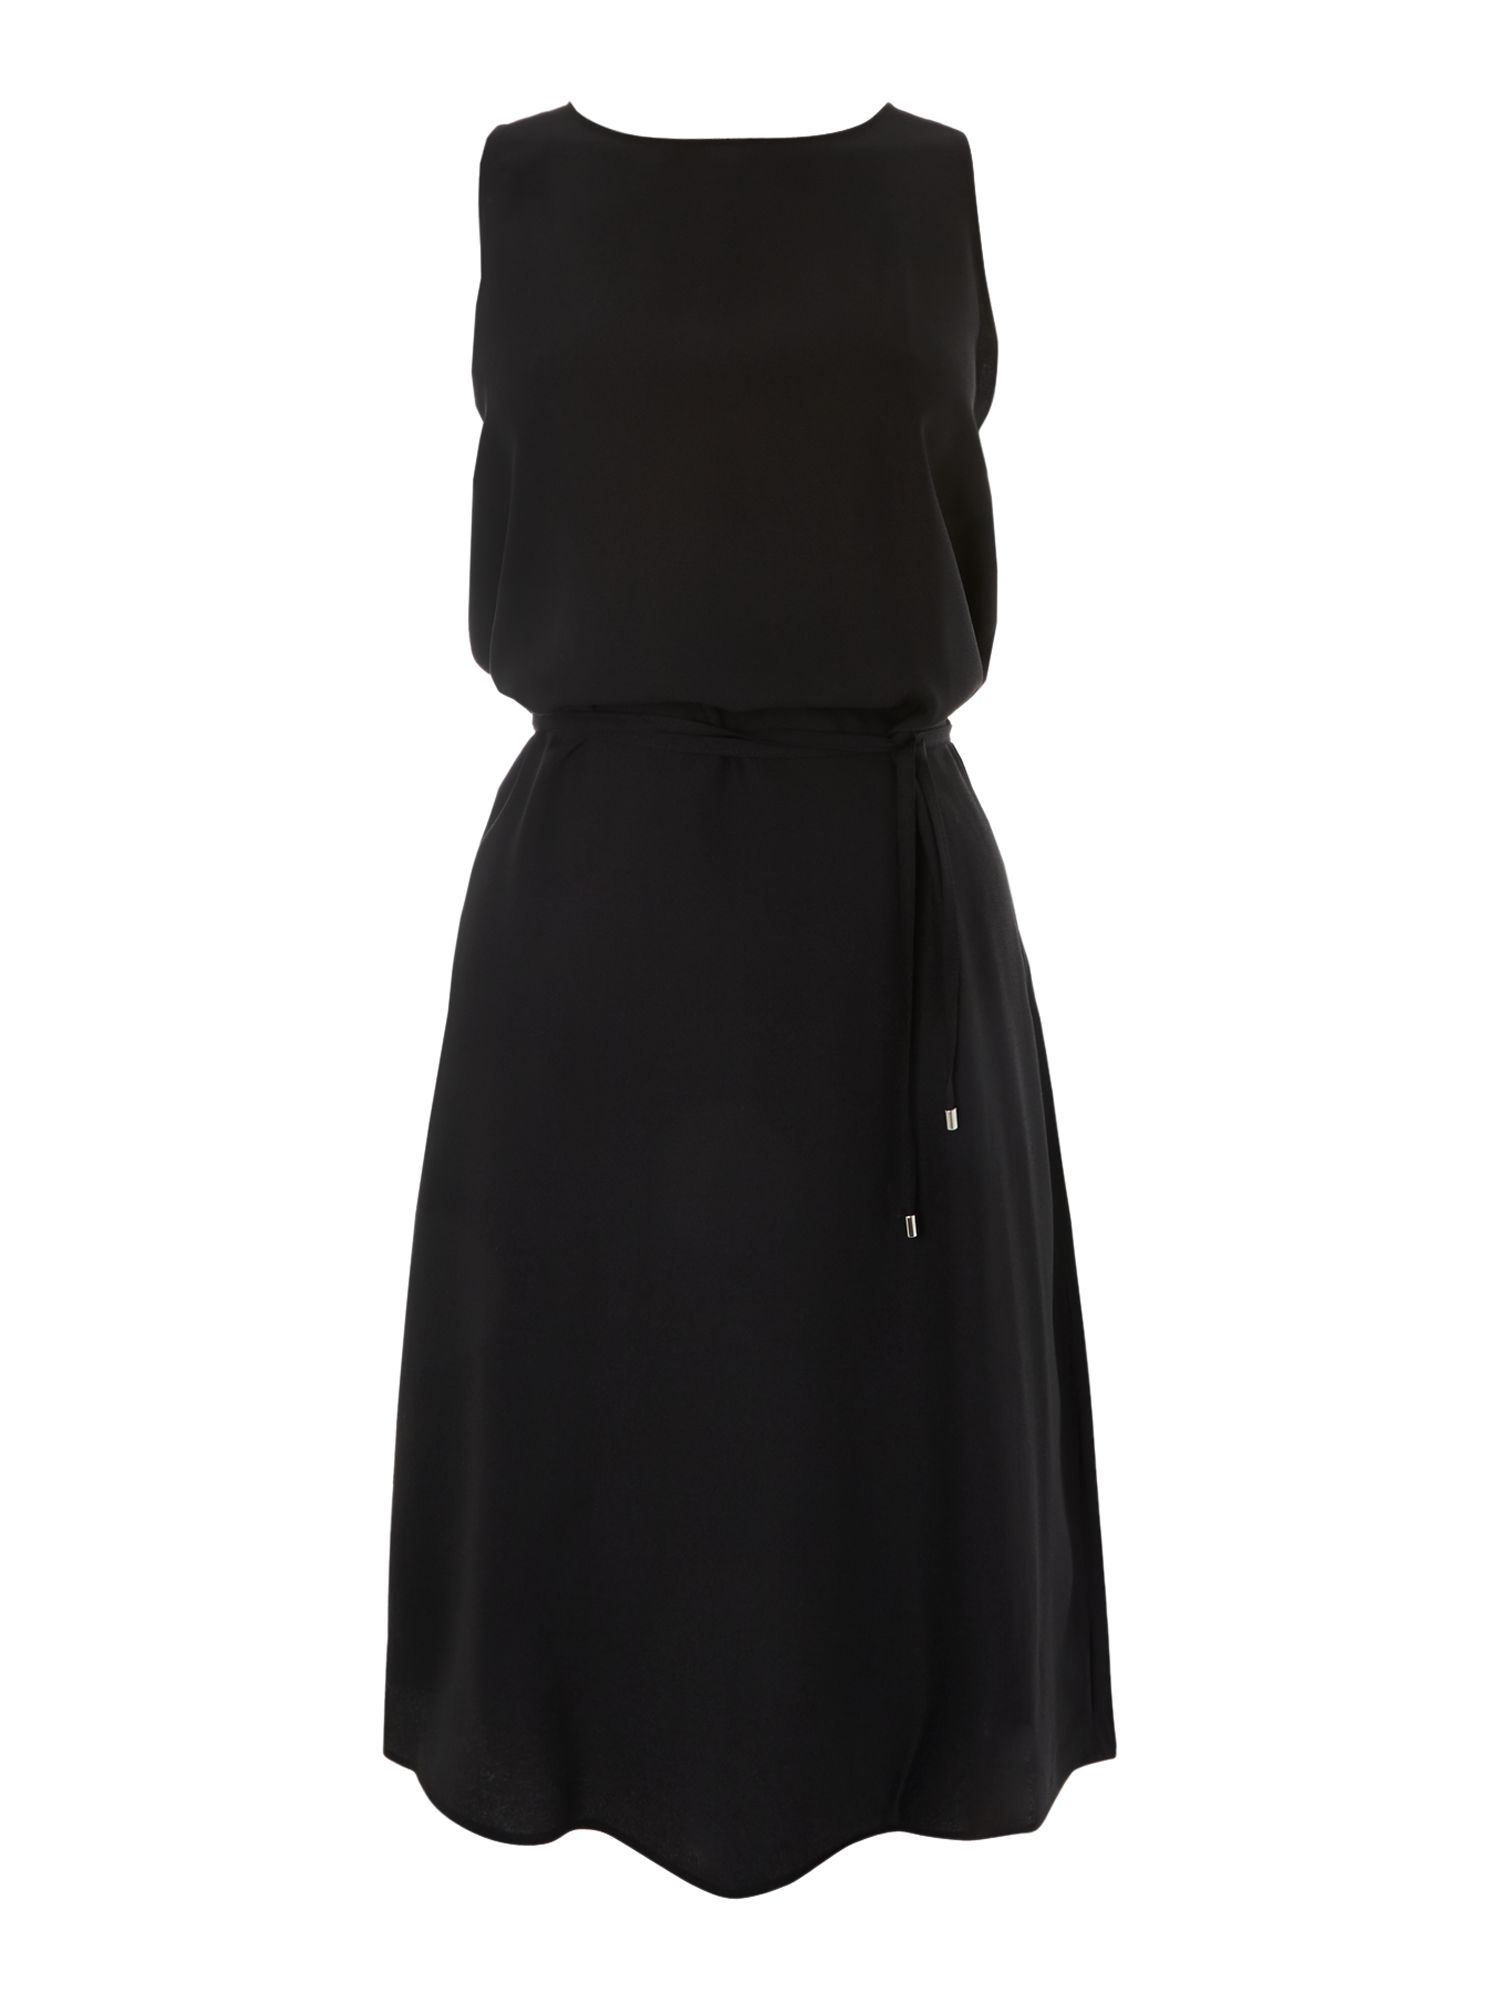 Sleeveless crepe dress with tie waist